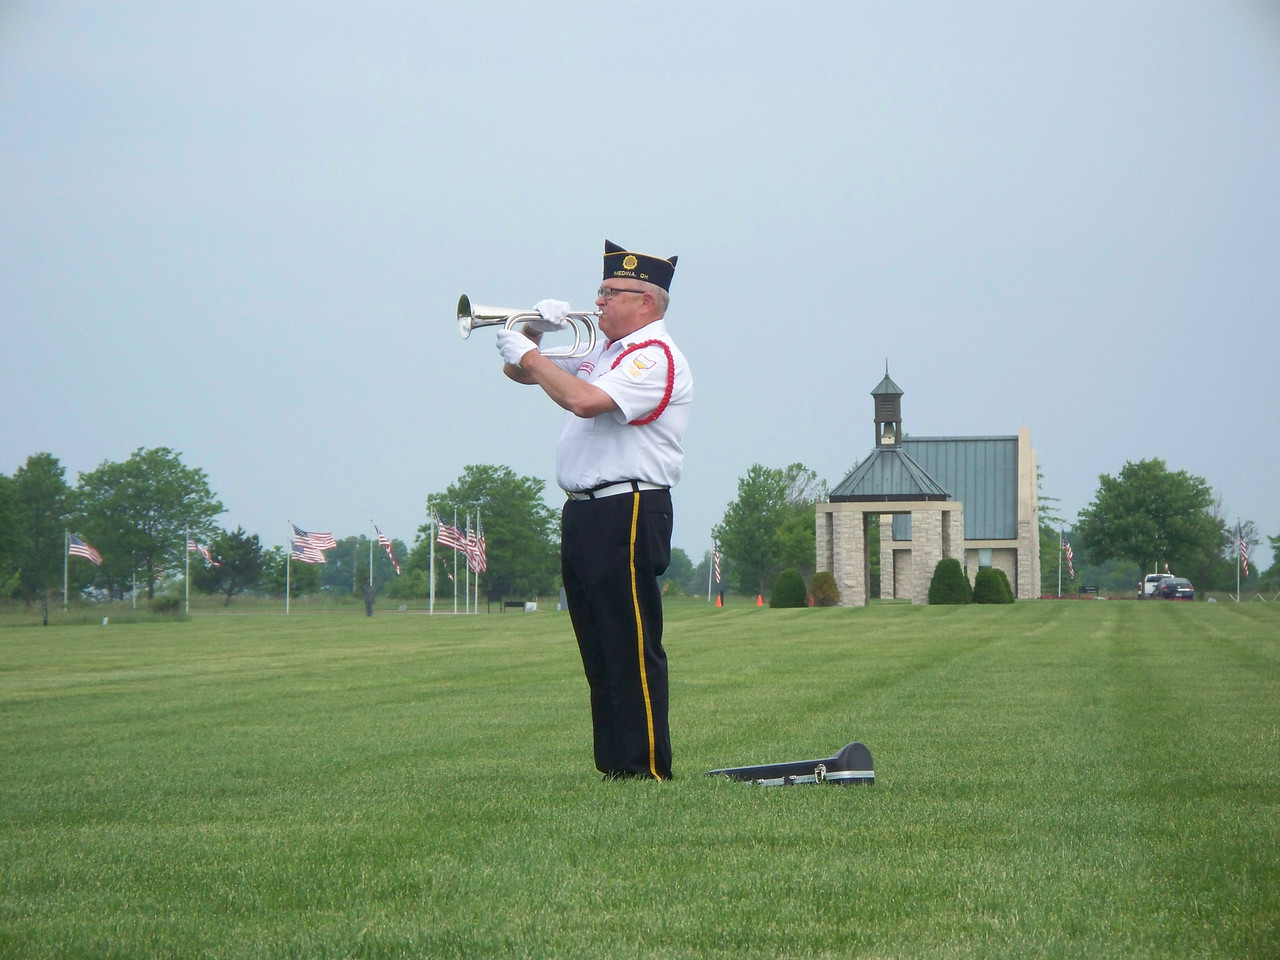 NIKKI RHOADES / GAZETTE A ceremony held Saturday as part of Memorial Day weekend at the Ohio Western Reserve National Cemetery in Rittman concluded with a rifle salute and the playing of Taps.